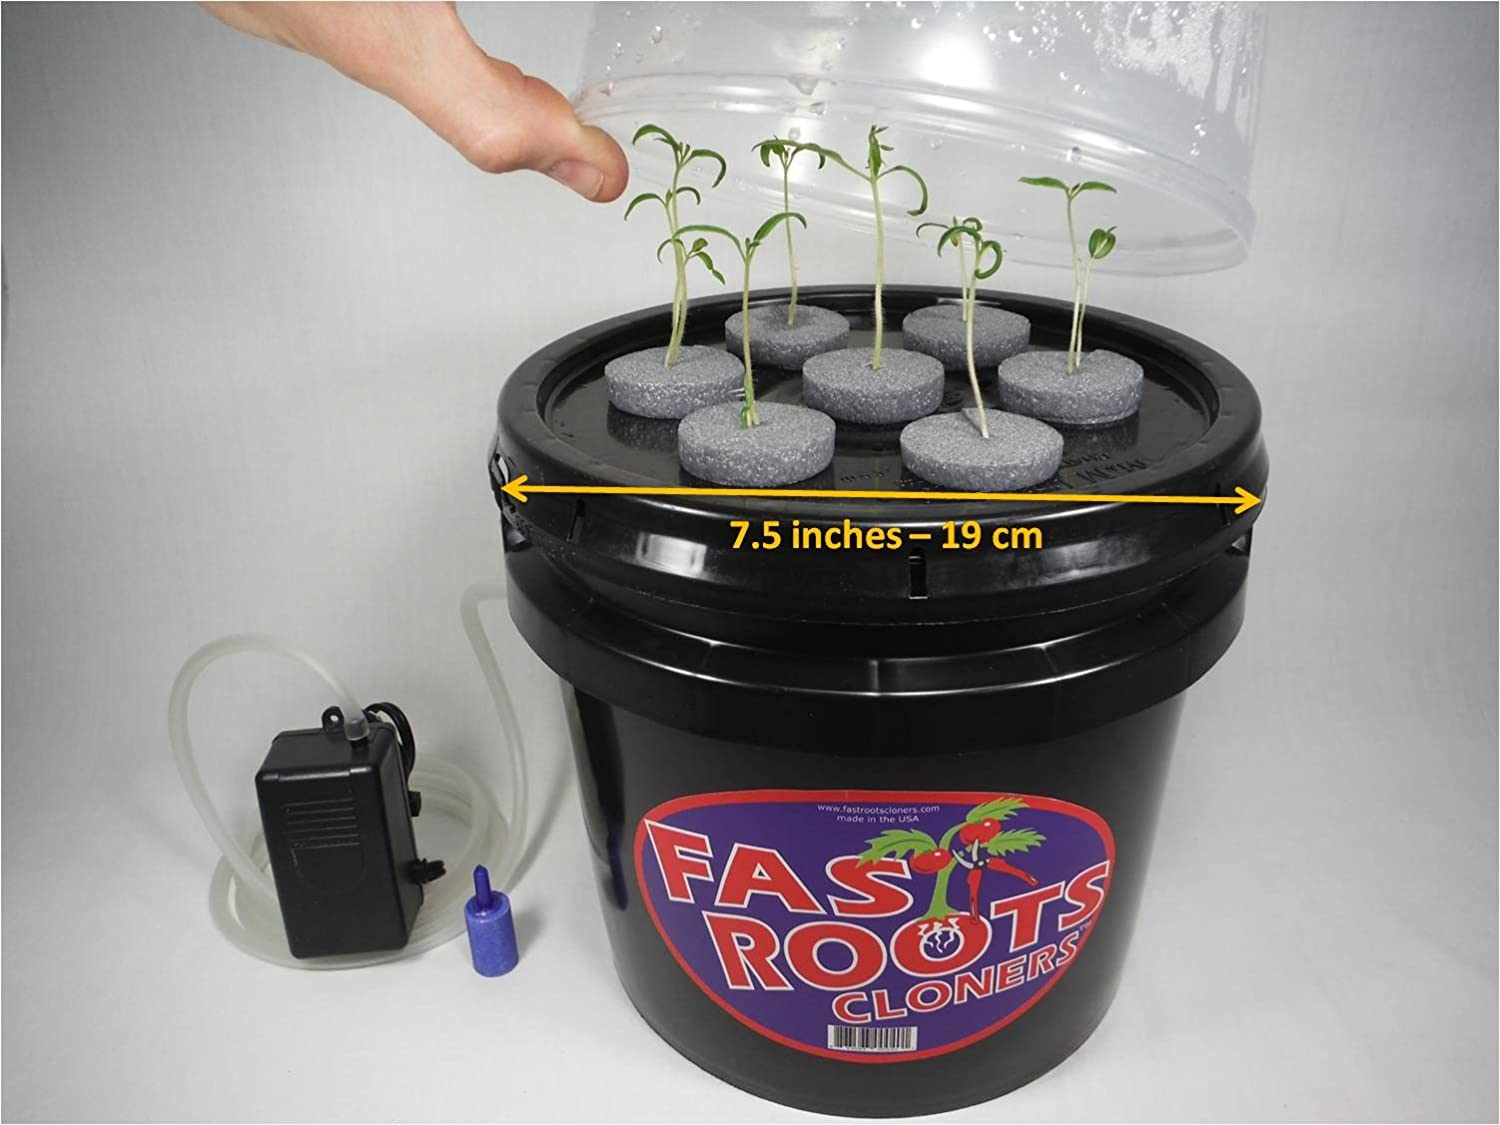 best cloning machine: Fast Roots Cleaners 7 Site Hydroponics Aeroponics - a money-saver